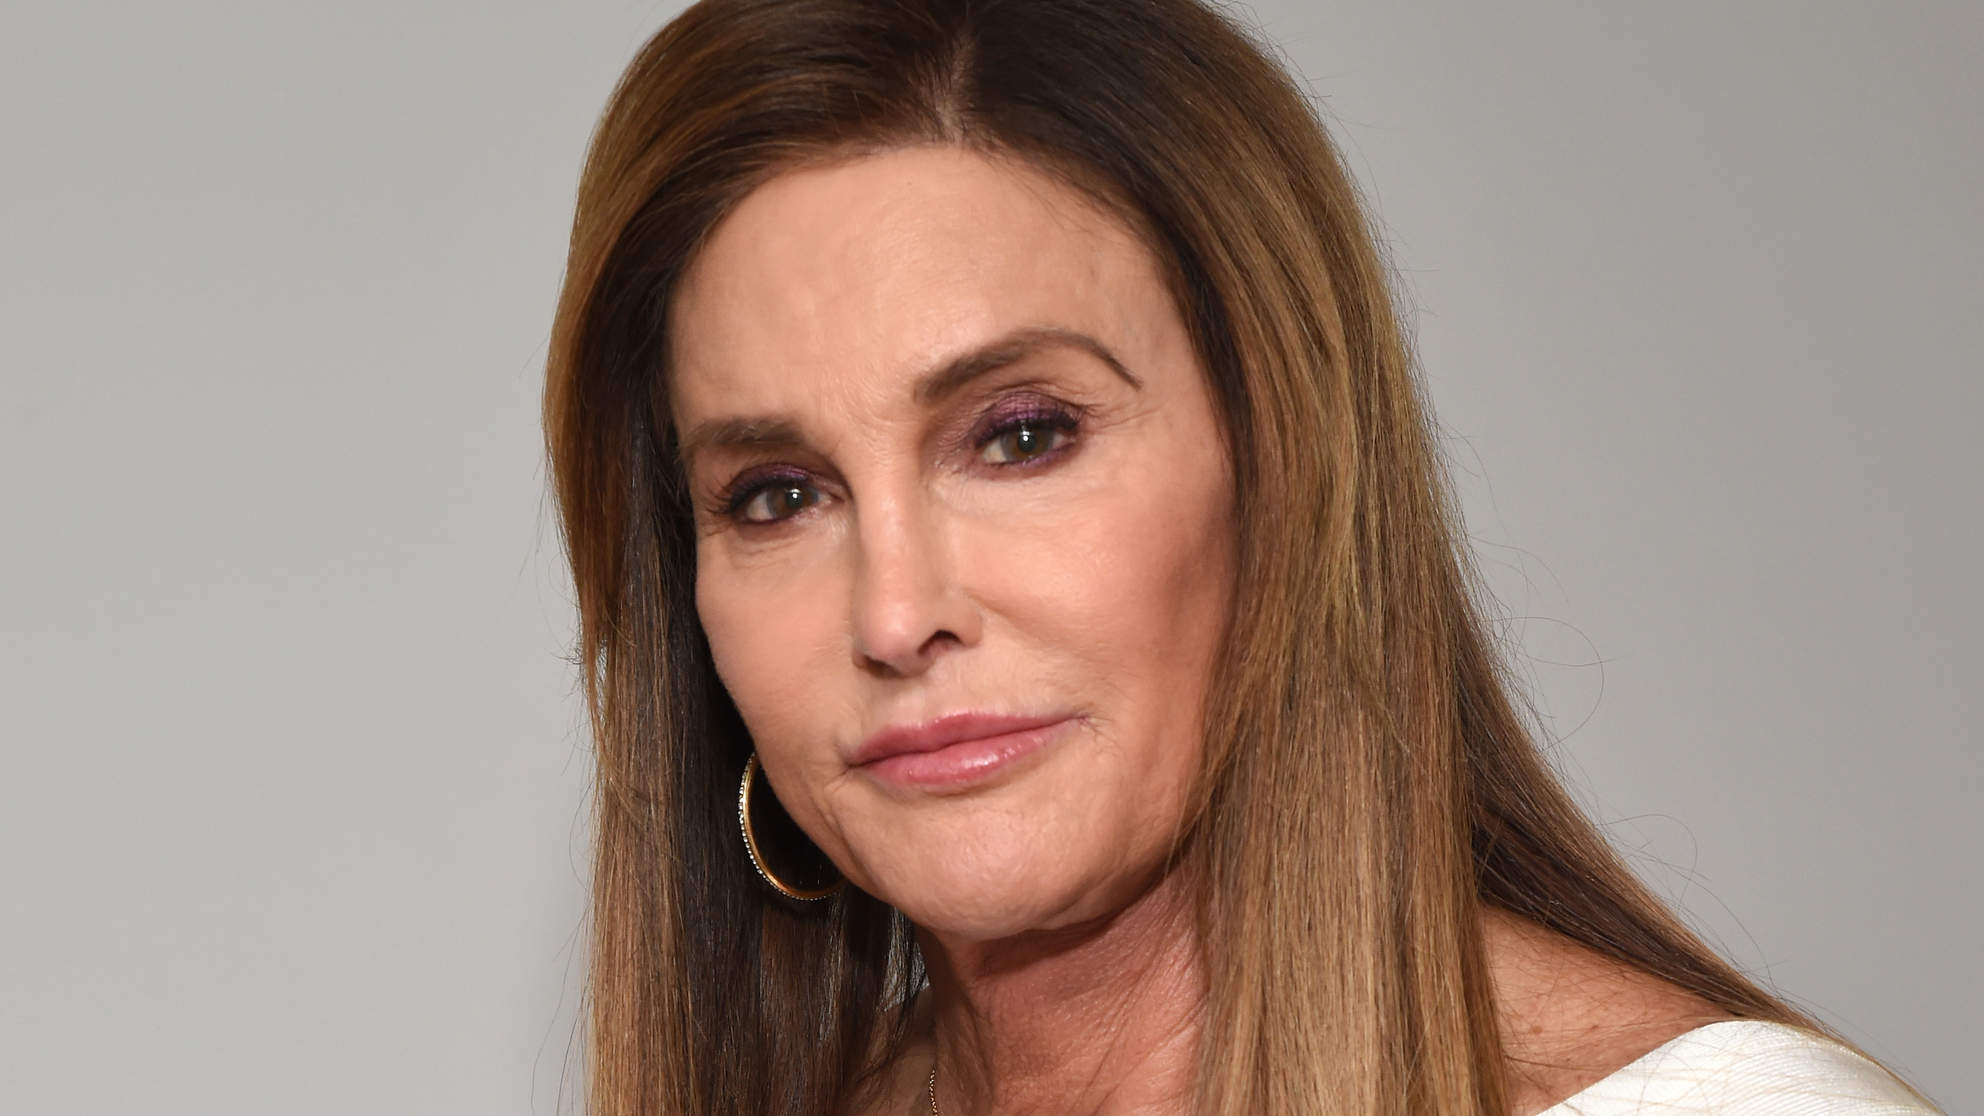 Caitlyn Jenner Reveals She Had Skin Cancer Removed from Her Nose: 'Always Wear Your Sunblock!'